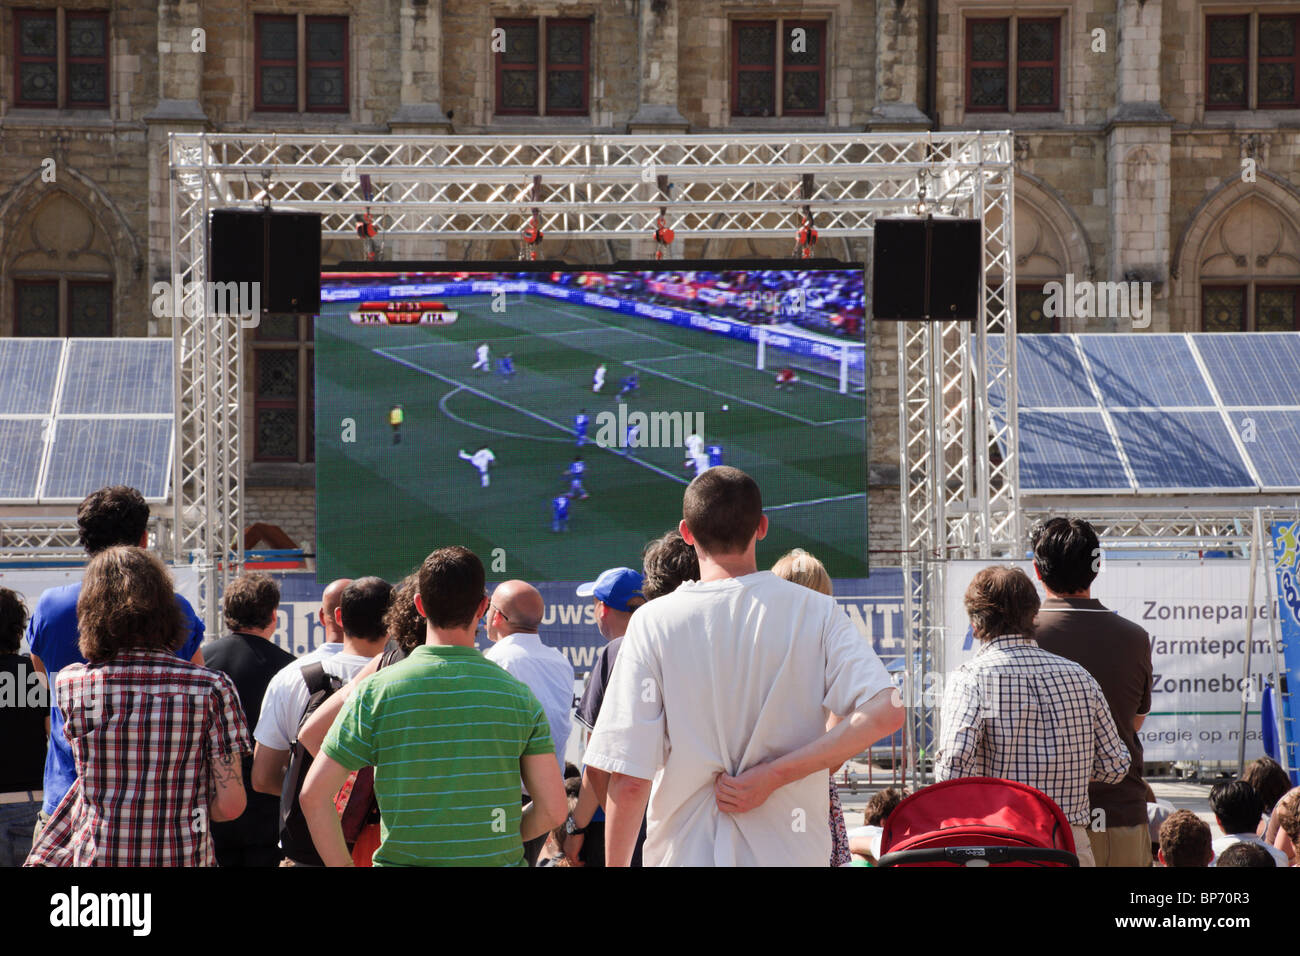 Sint-Baafs Plein, Ghent, East Flanders, Belgium. People outside watching football match on big screen public television - Stock Image